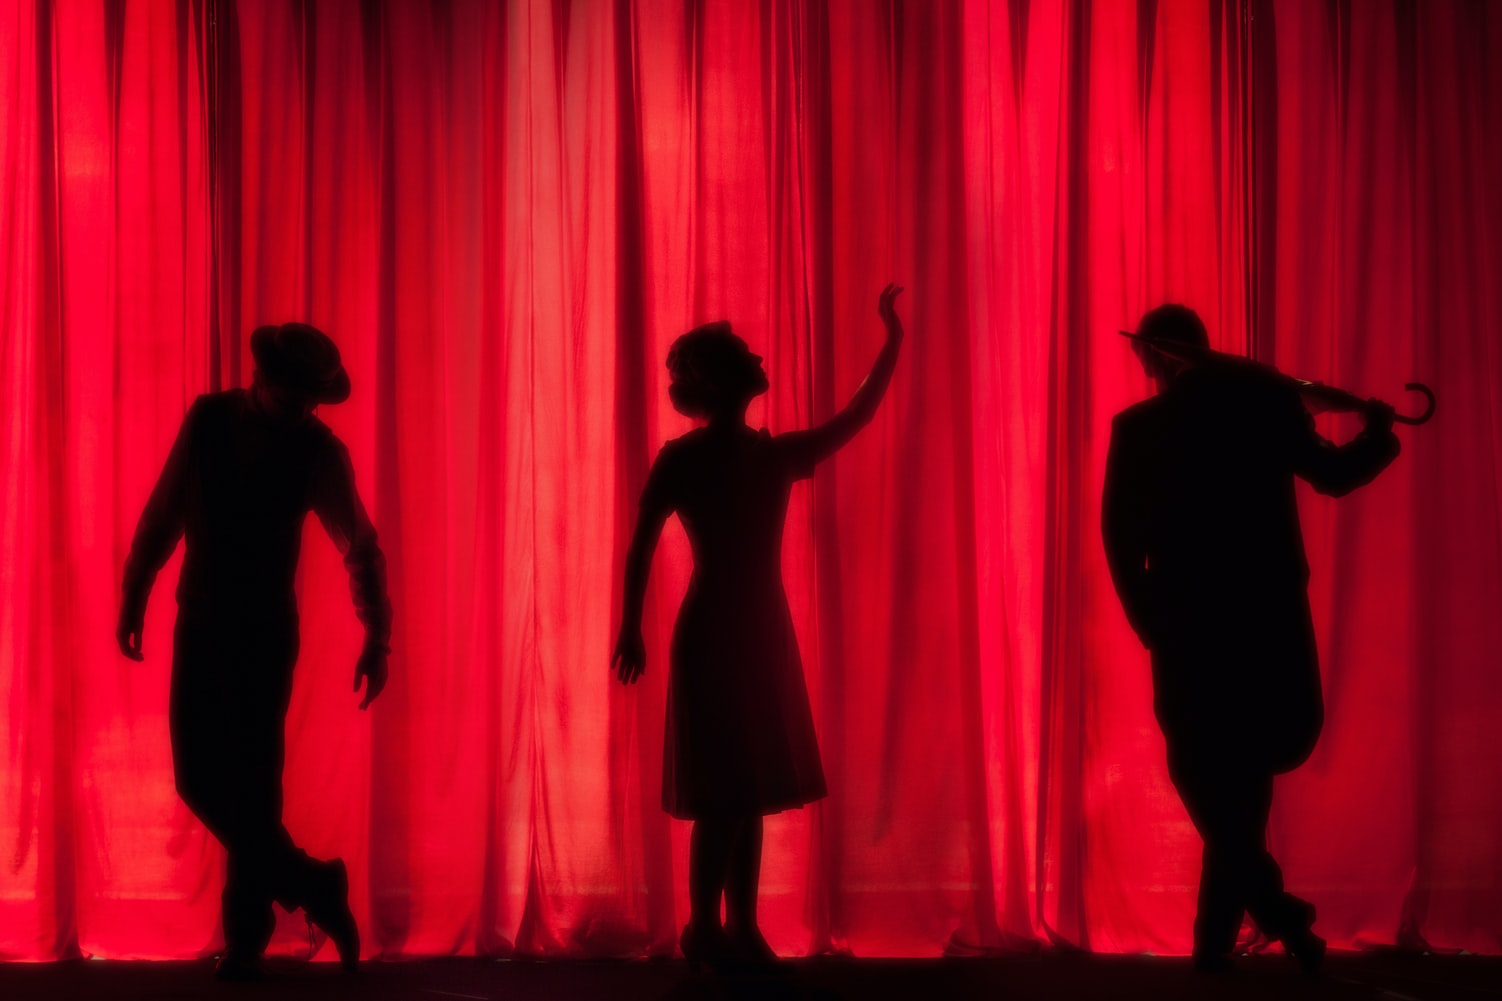 Silhouette of performers against red curtain background